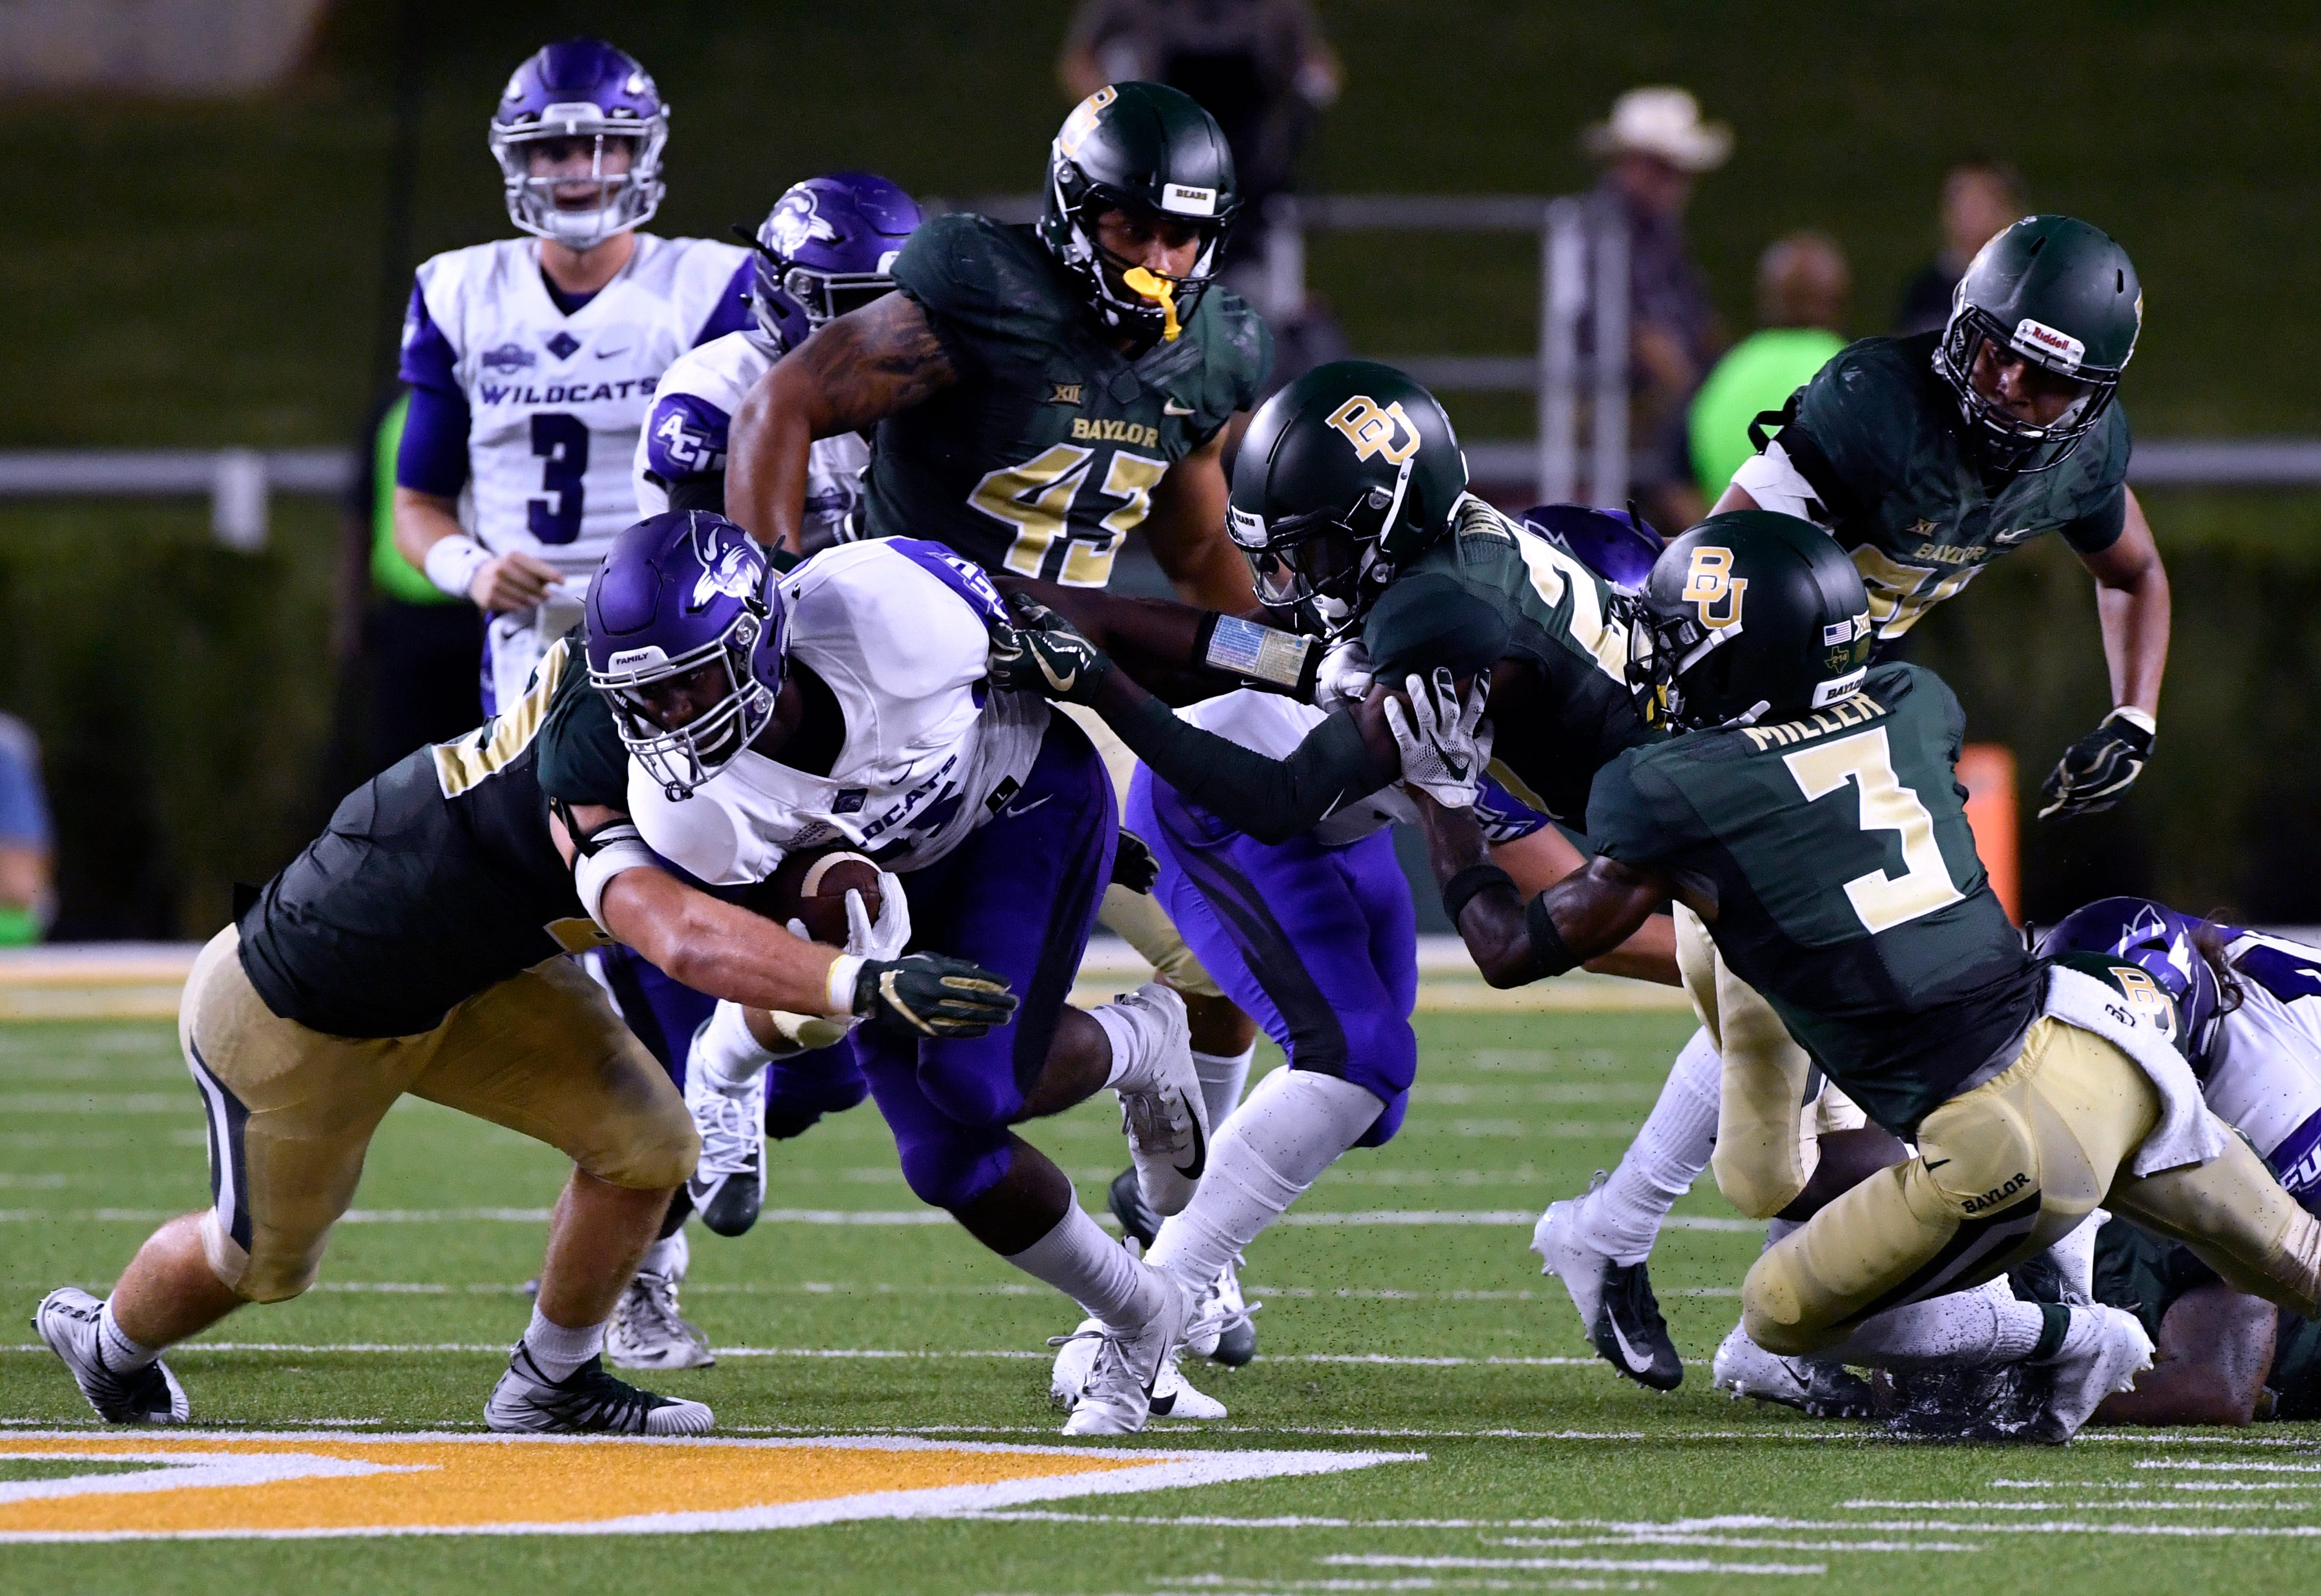 Wildcats running back Tyrese White is surrounded by Baylor defenders during the Sept. 1 game in Waco.